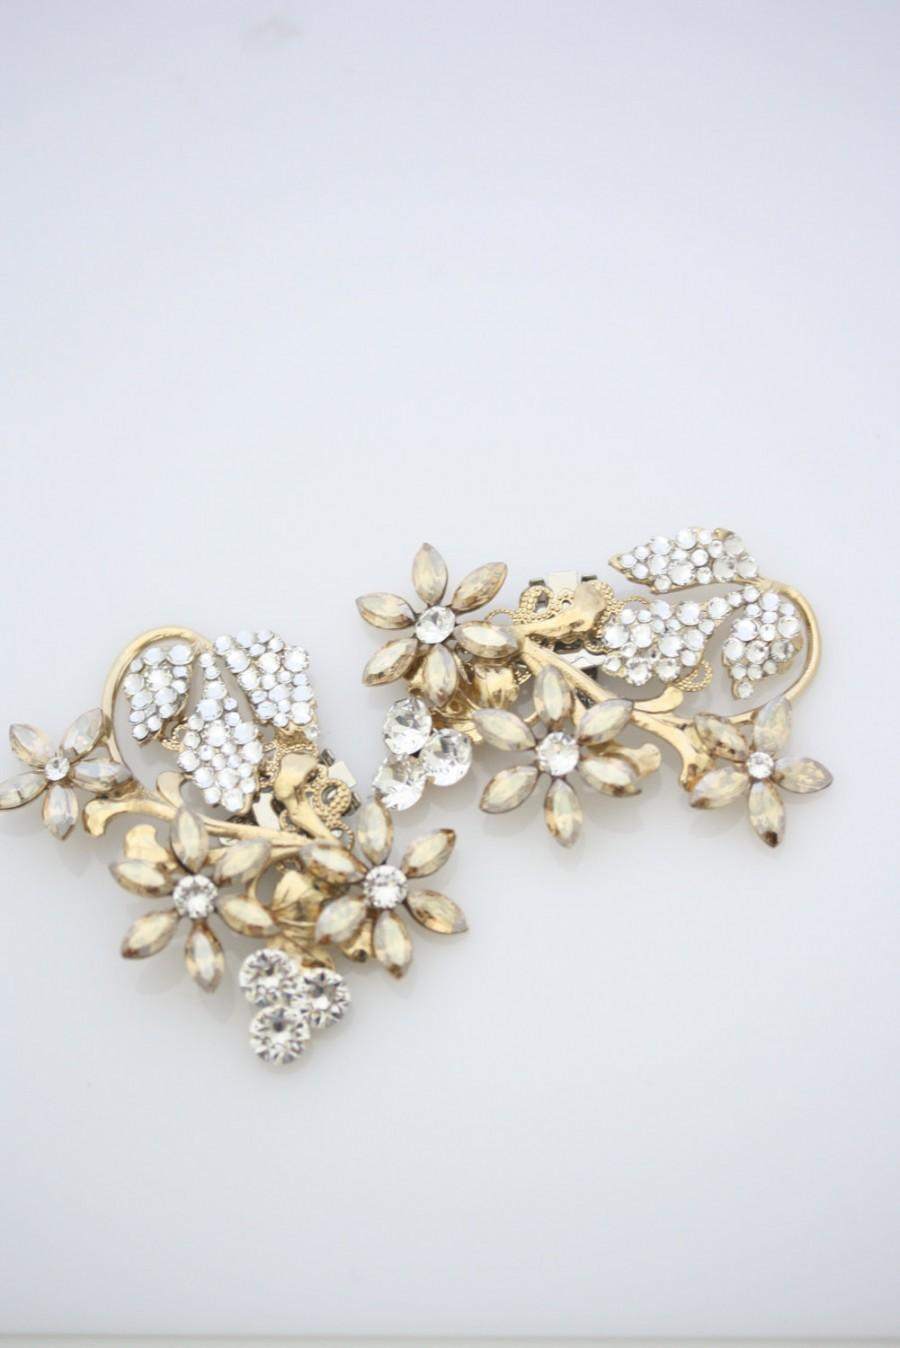 Mariage - Gold Wedding Shoe Clips Crystal Shoe Clips Rhinestone Shoe clips Crystal Flower Shoe Clip Golden Shadow Leaf shoe clips AUBURY